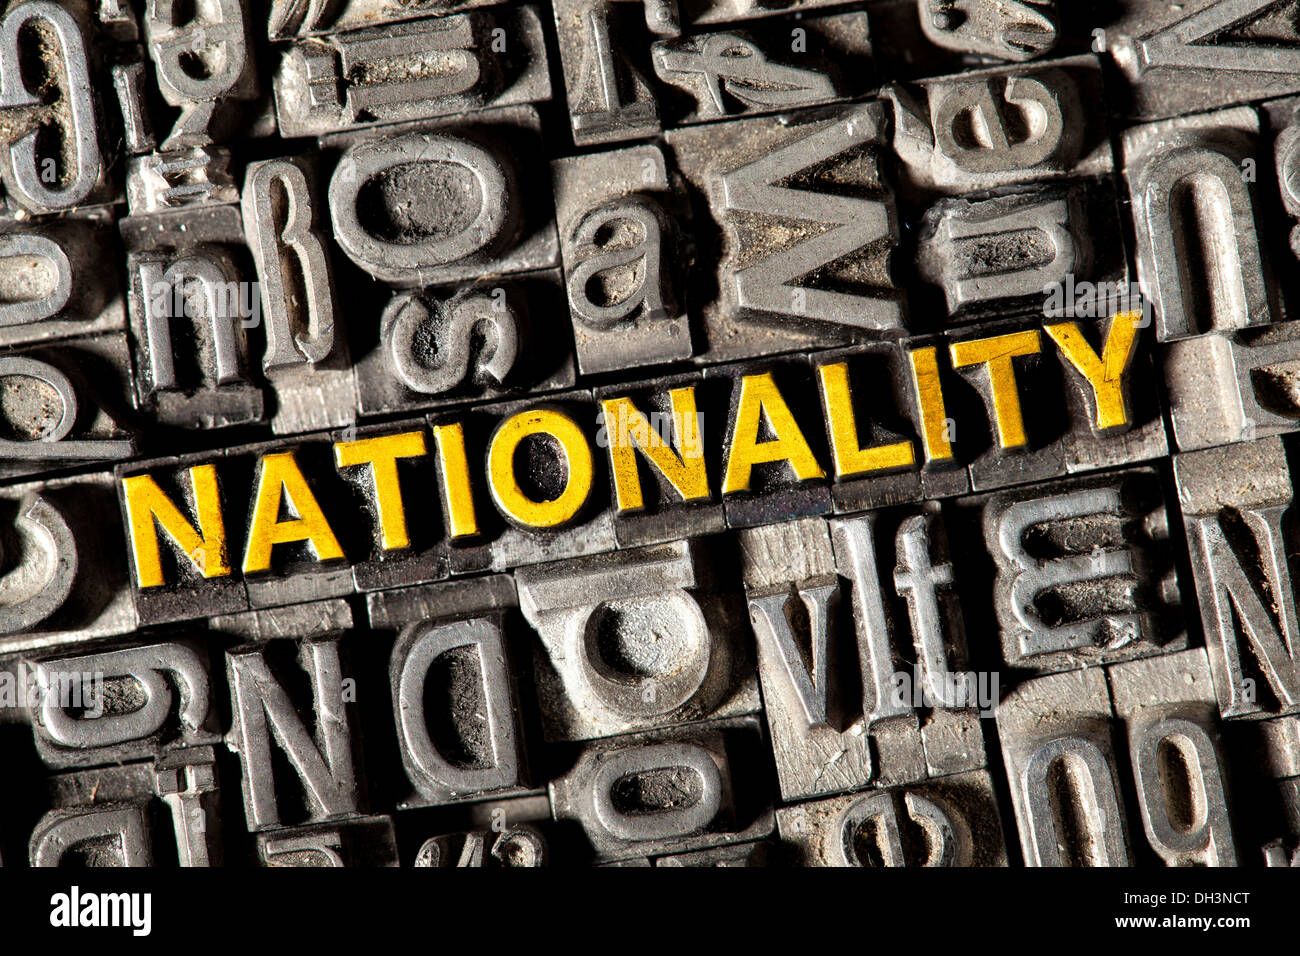 Old lead letters forming the word 'nationality' - Stock Image